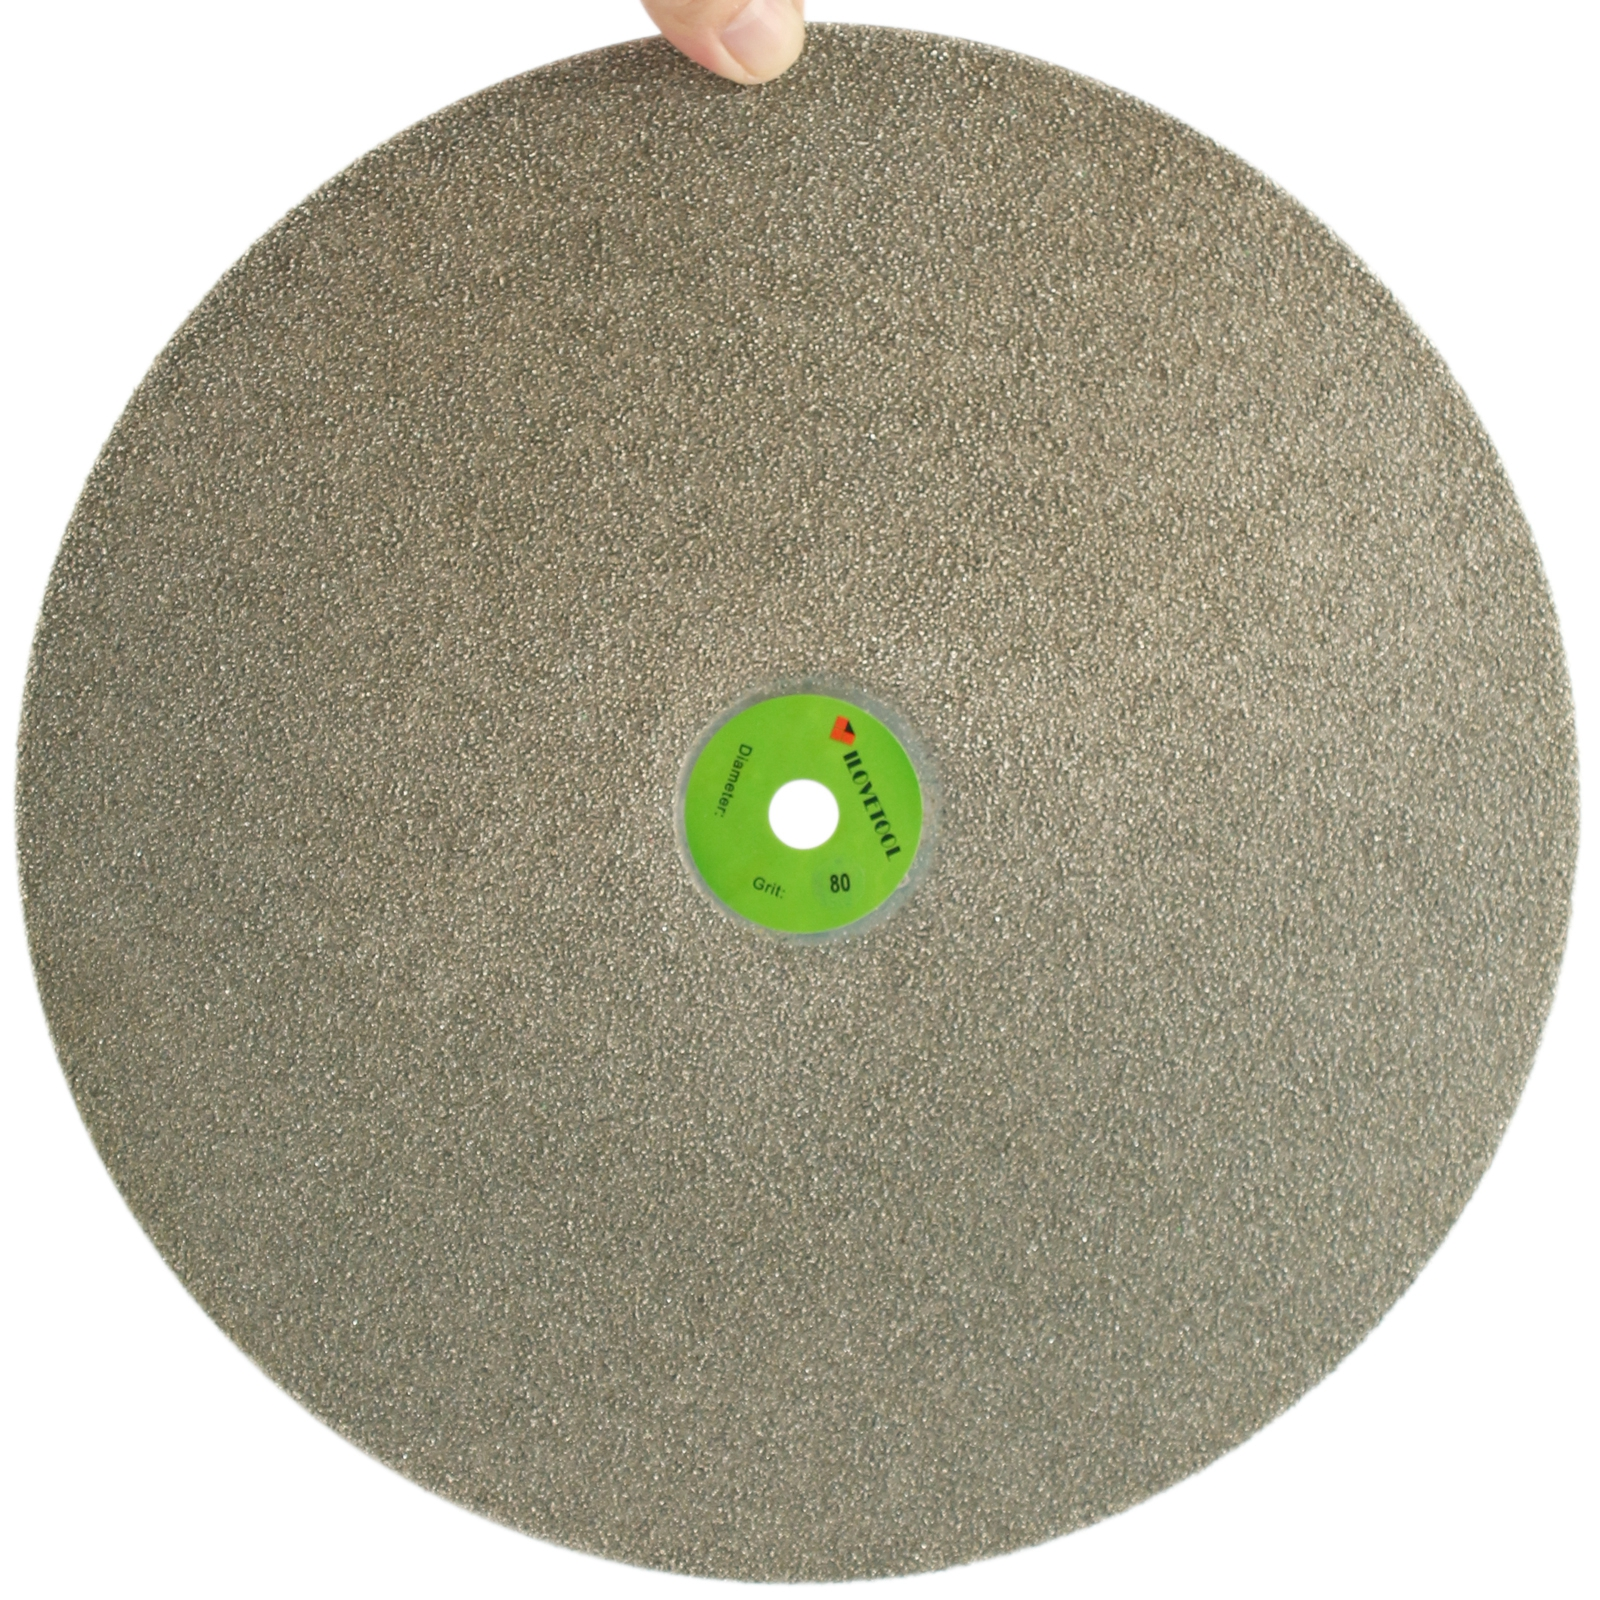 14 inch Diamond Coated Flat Lap Disk Grinding Polishing Wheel Grit 80 - 1000 ILOVETOOL imperforate 8 inch diamond grinding disc coated flat lap disk jewelry tools ilovetool